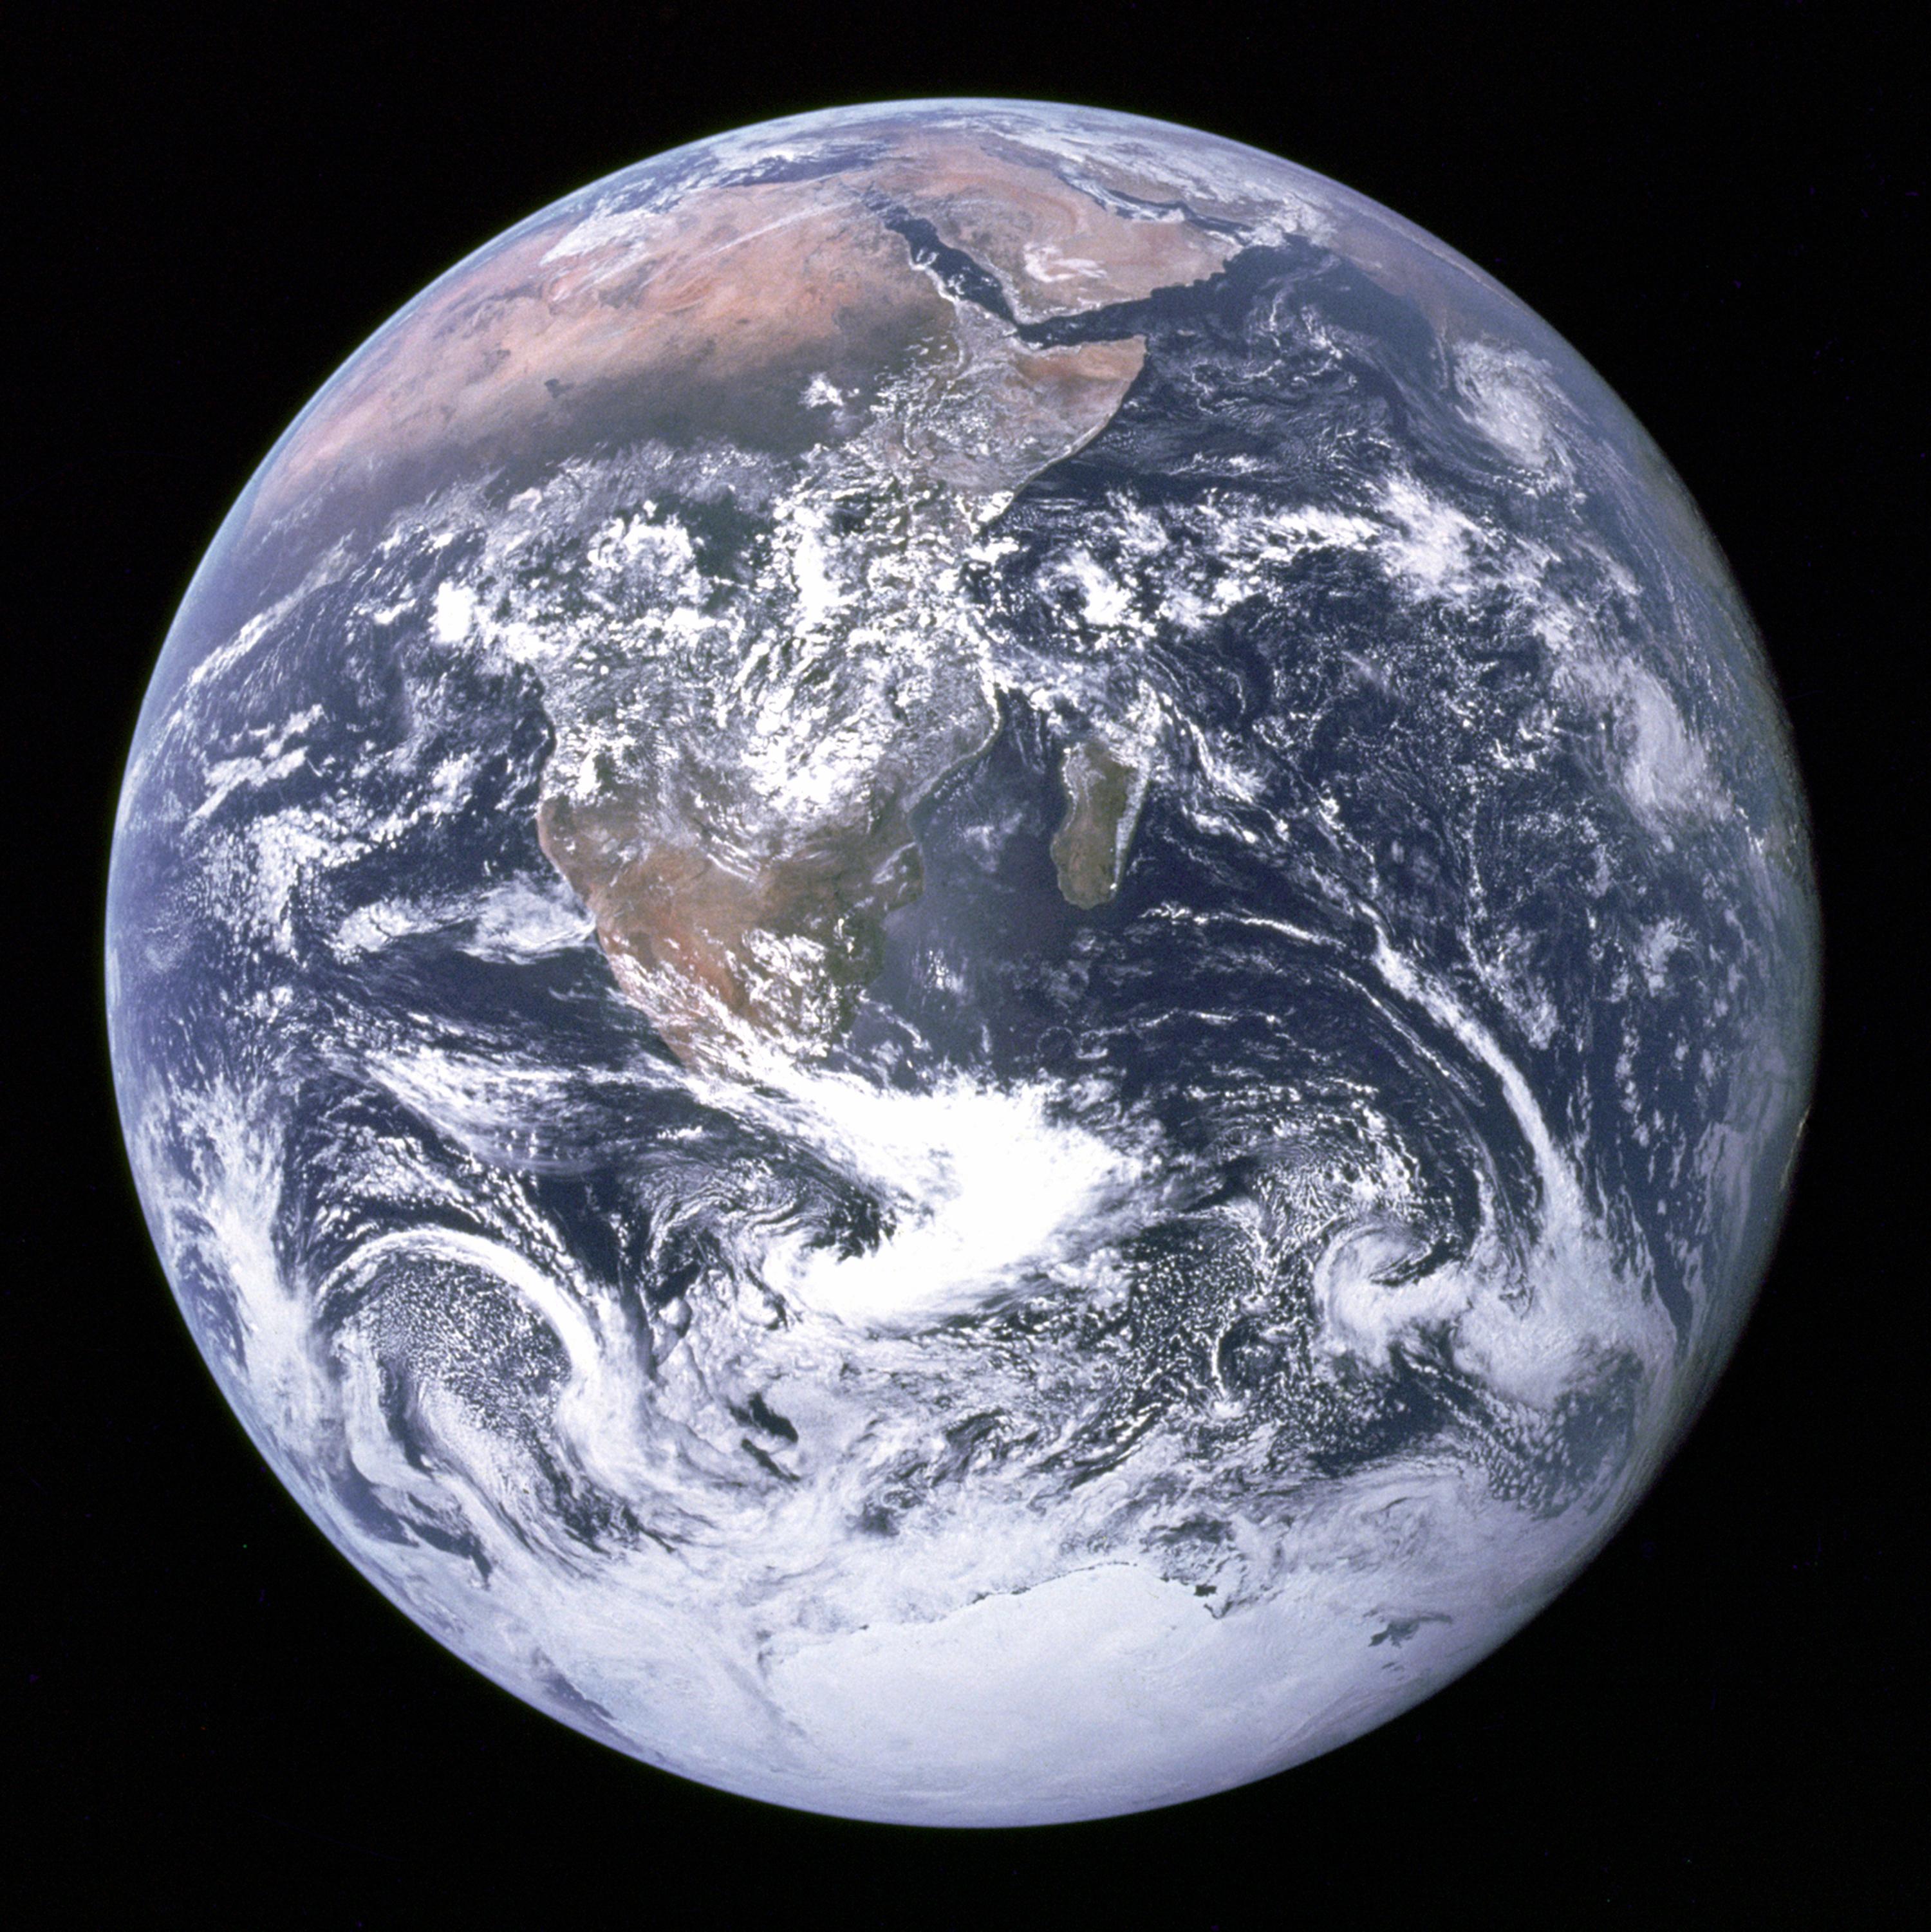 Earth in Full View. The Apollo 17 crew caught this breathtaking view of our home planet as they were traveling to the moon on Dec. 7, 1972. It's the first time astronauts were able to photograph the South polar ice cap. Nearly the entire coastline of Africa is clearly visible, along with the Arabian Peninsula. Source: NASA.